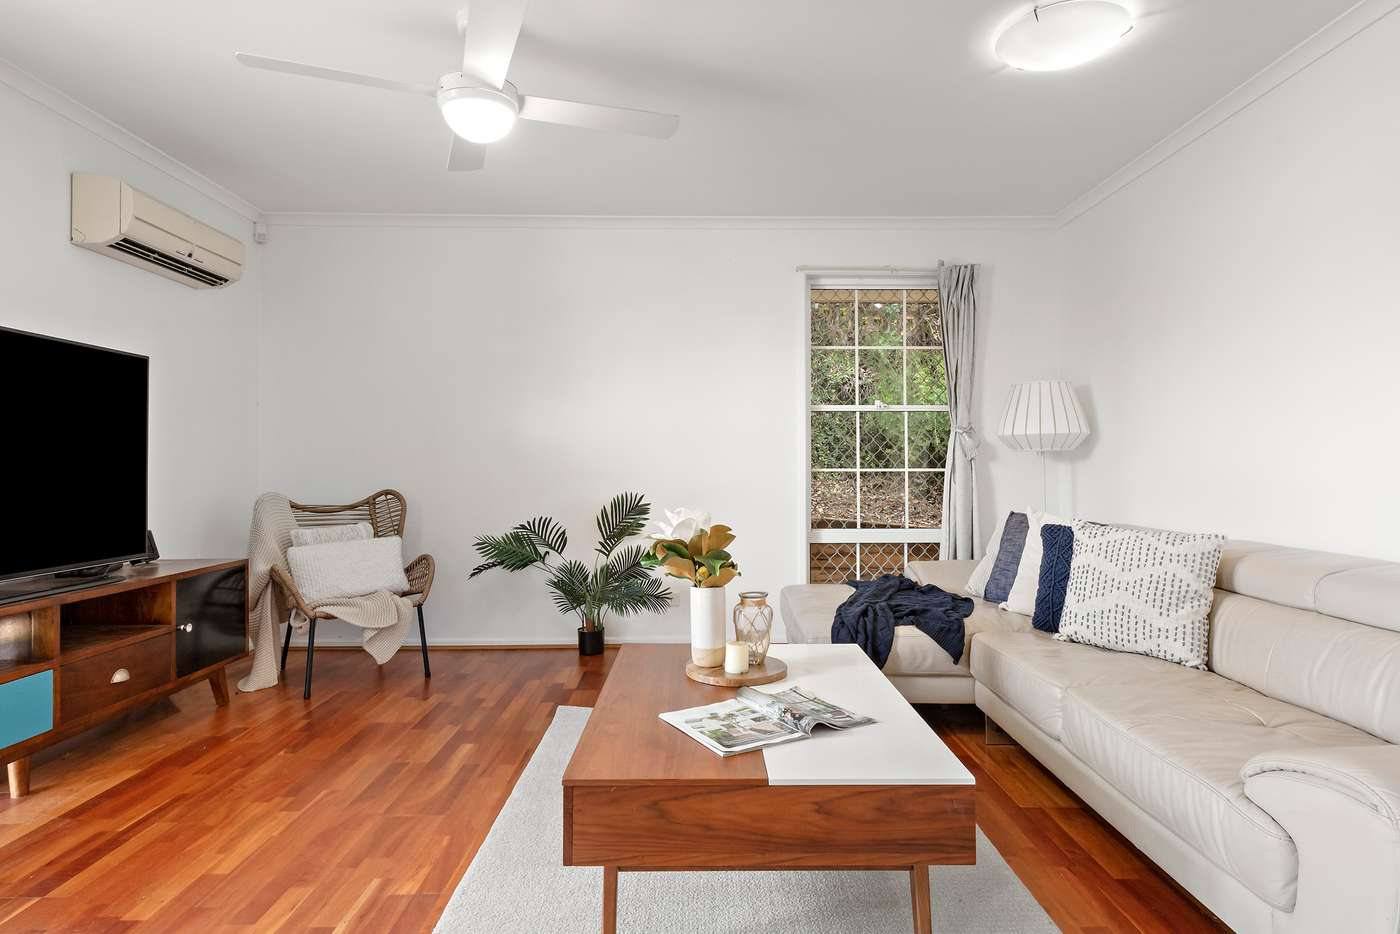 Fifth view of Homely house listing, 62 Coolong Street, Mount Gravatt East QLD 4122